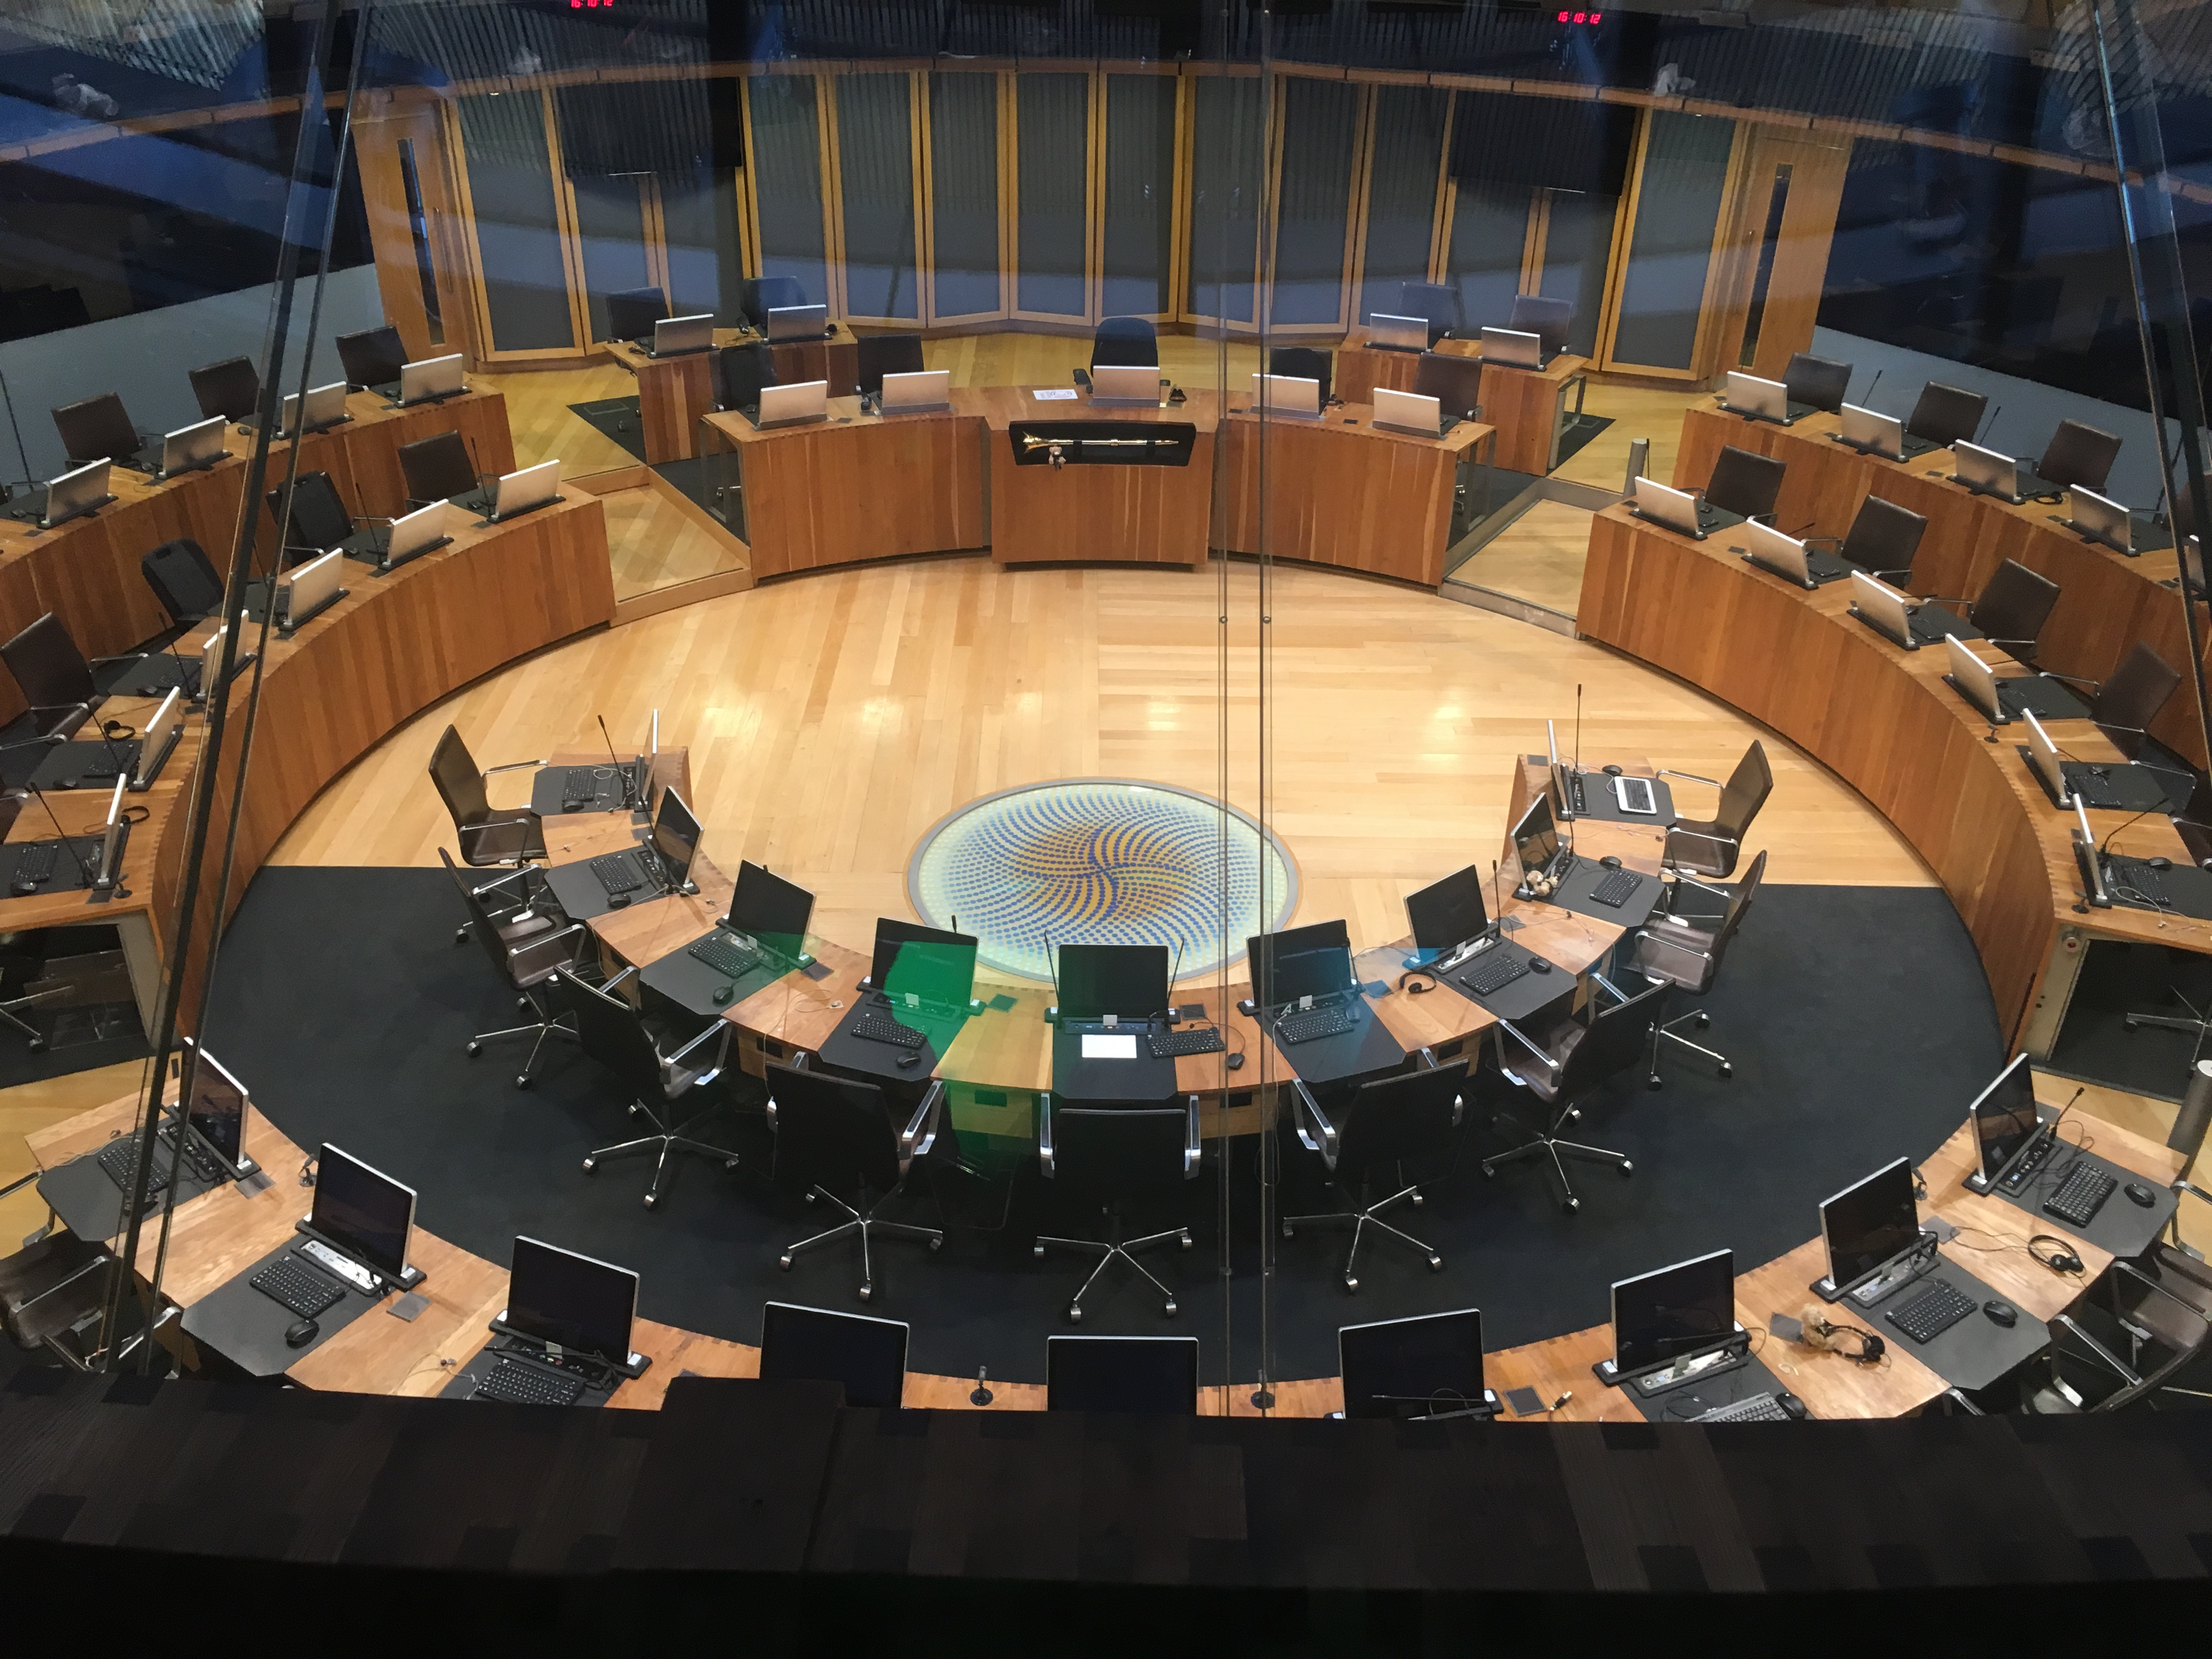 Siambr, debating chamber at the Senedd, National Assembly for Wales